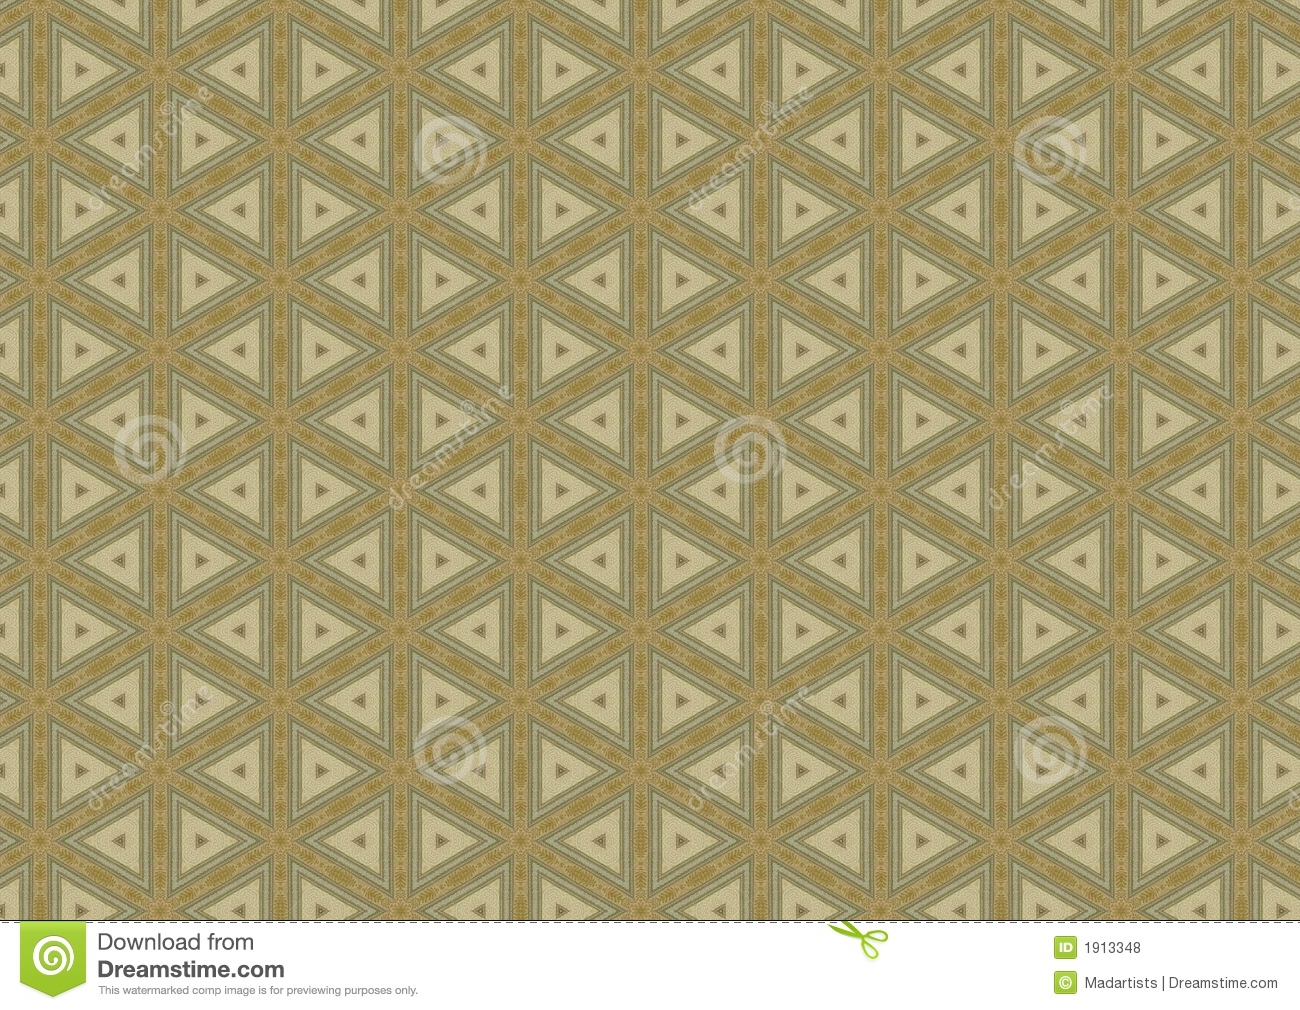 Triangle Quilt Pattern Texture Photos : Triangle Quilt Pattern Texture Royalty Free Stock Photos - Image: 1913348